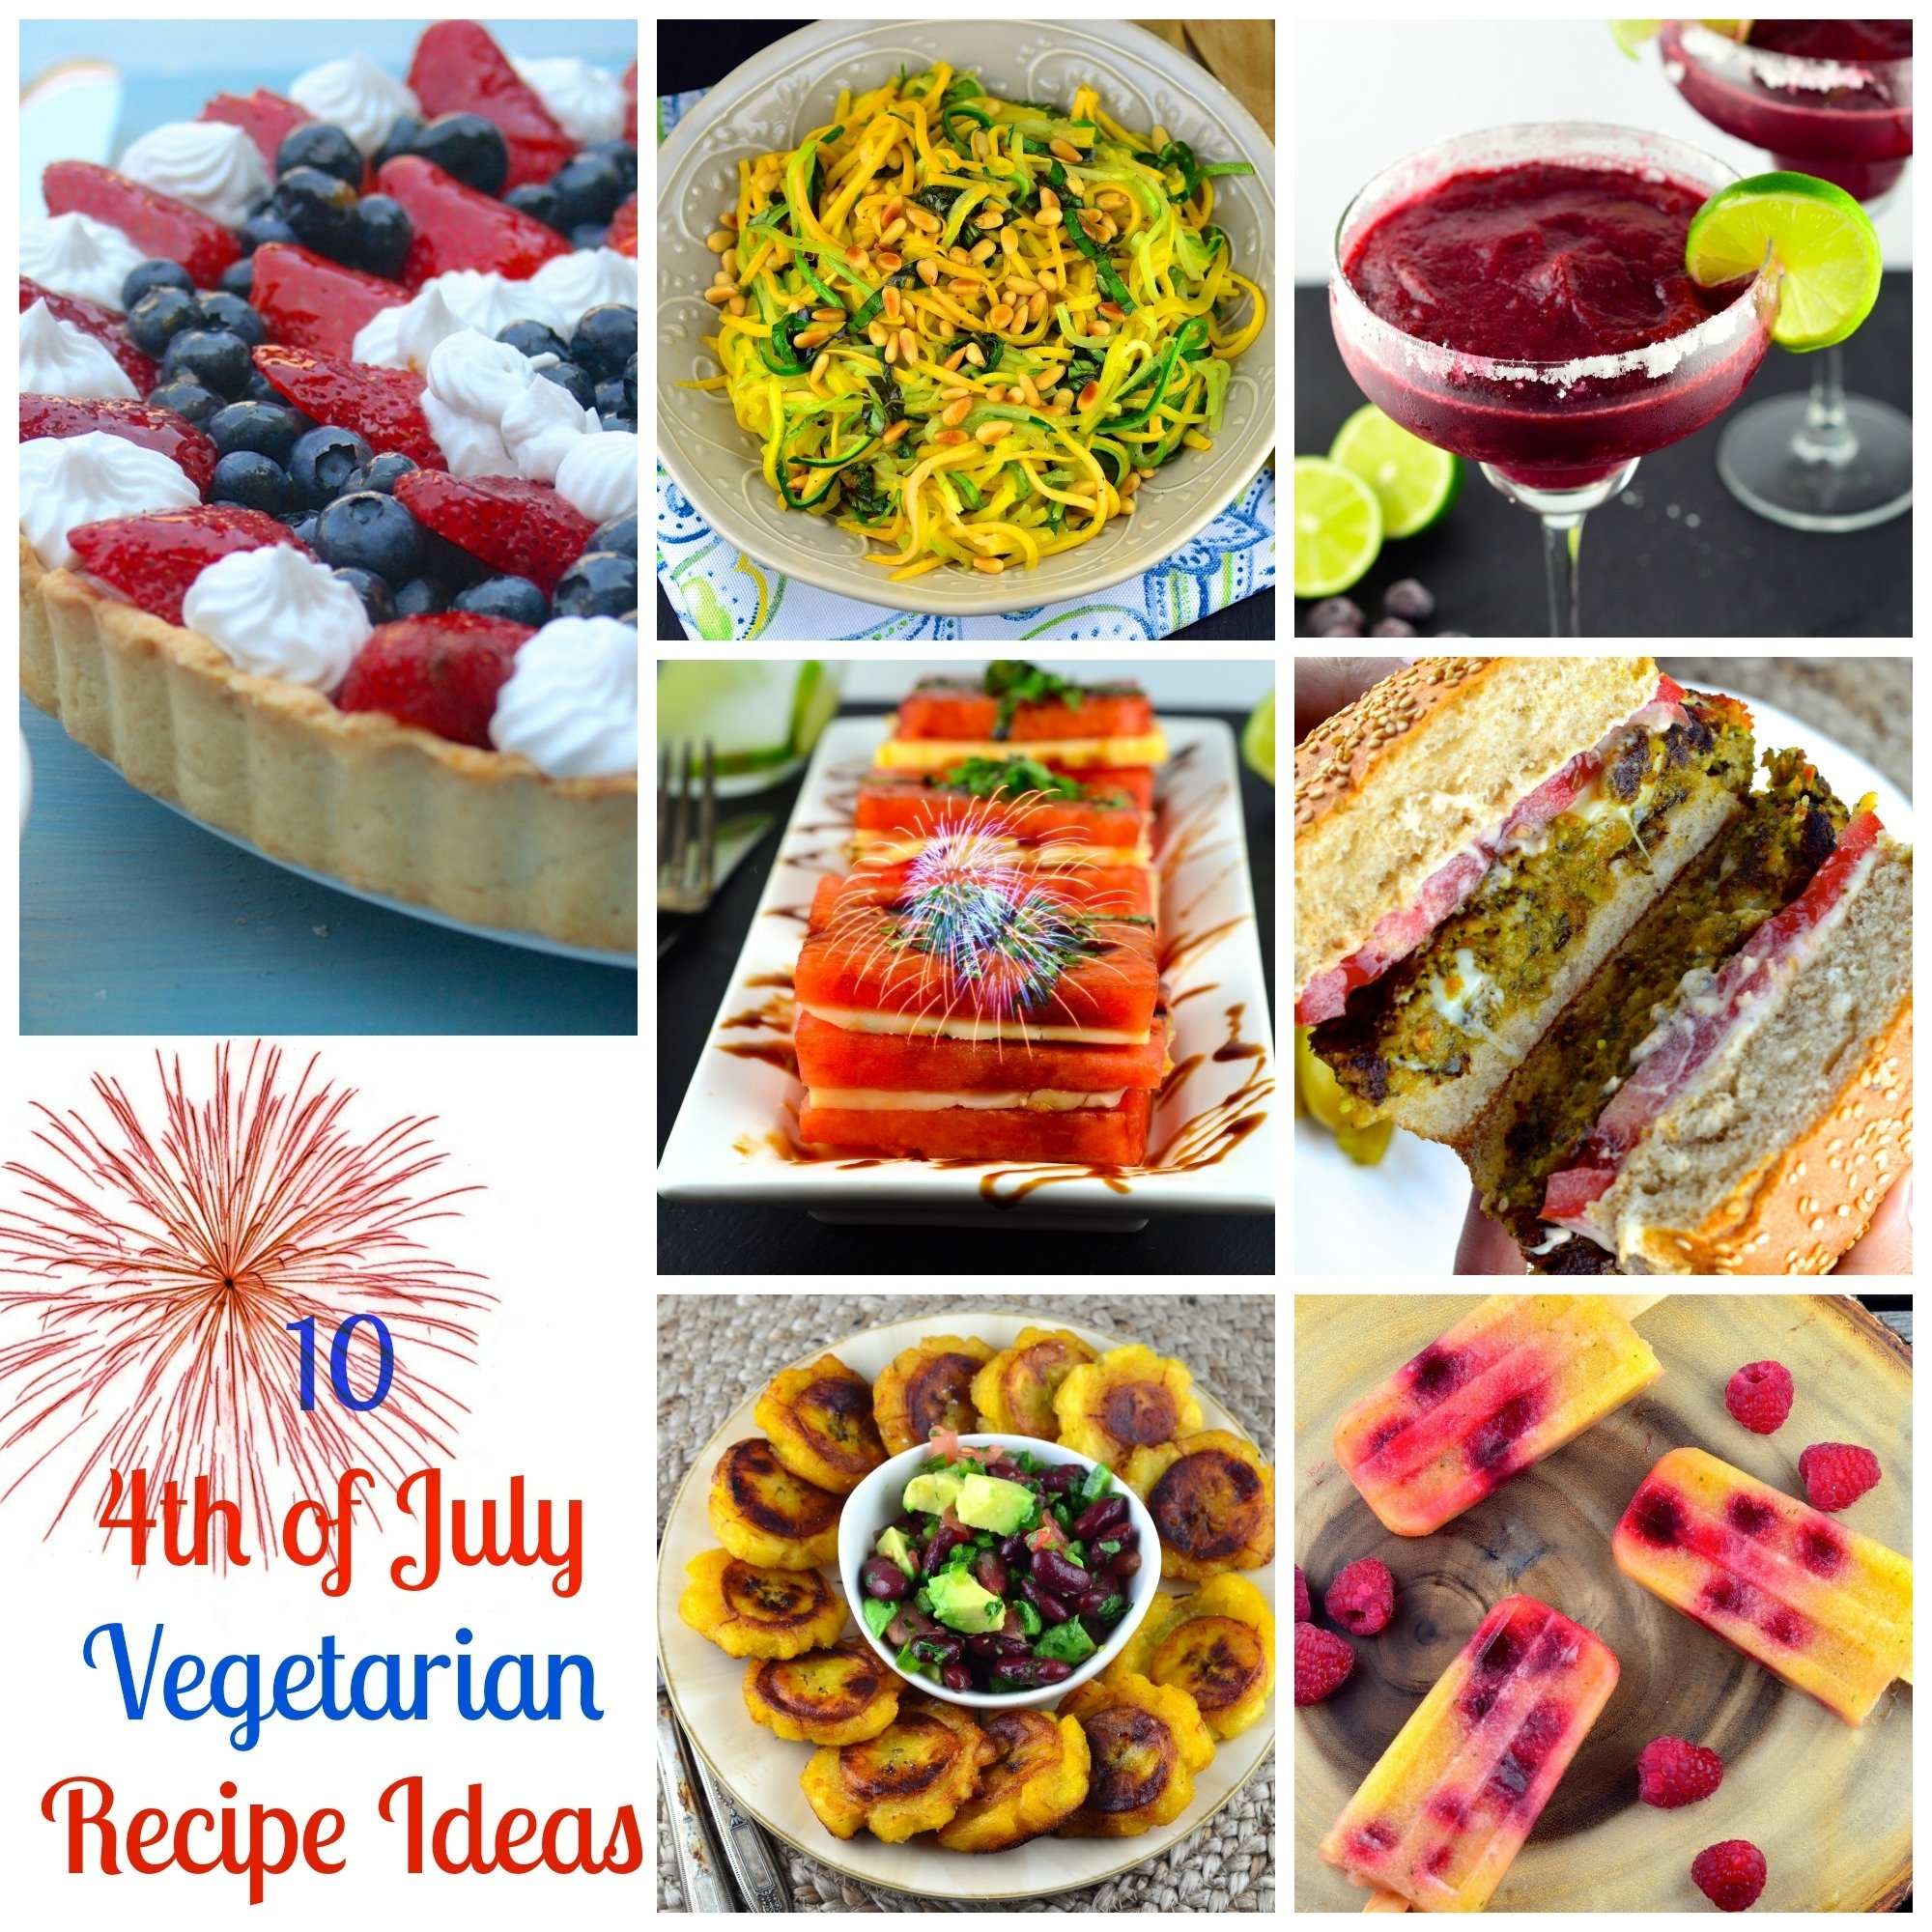 10 Most Recommended 4Th Of July Recipe Ideas ten 4th of july vegetarian recipe ideas 2021